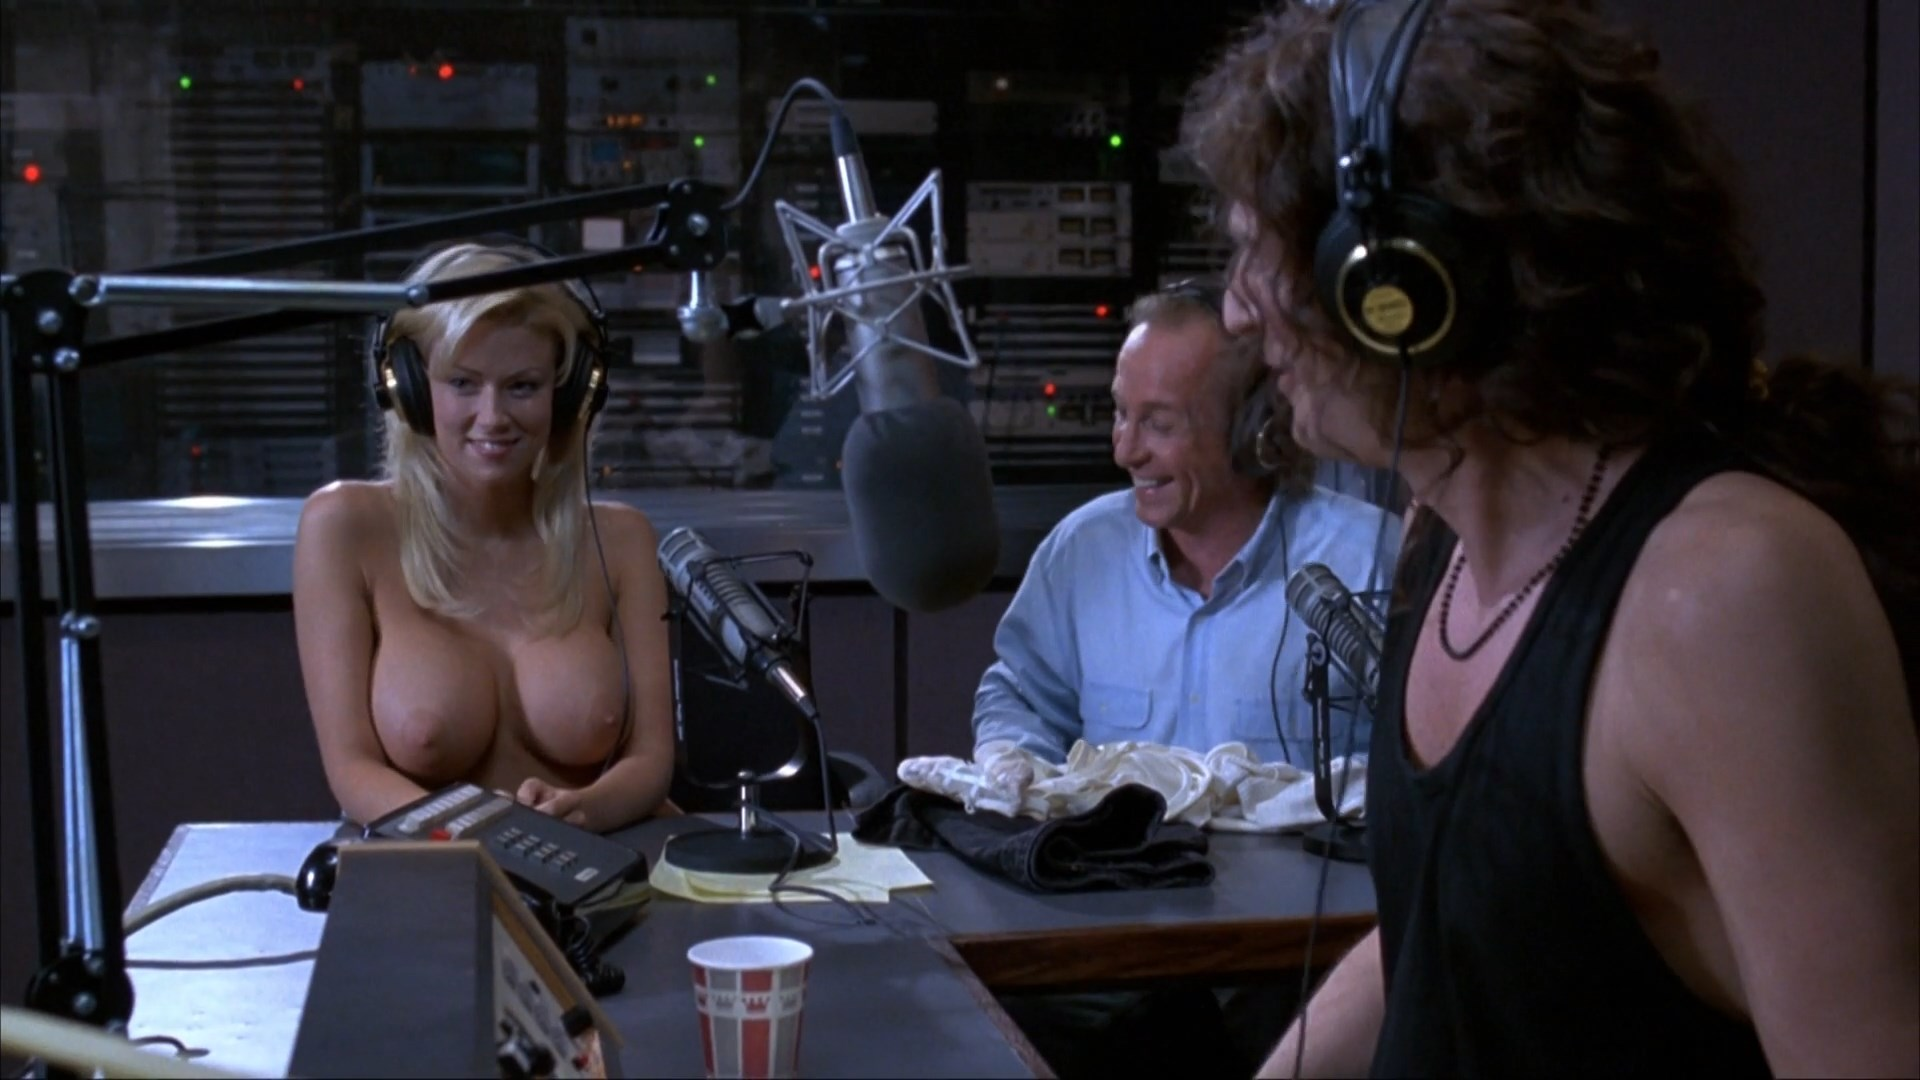 Nude Scene Howard Stern